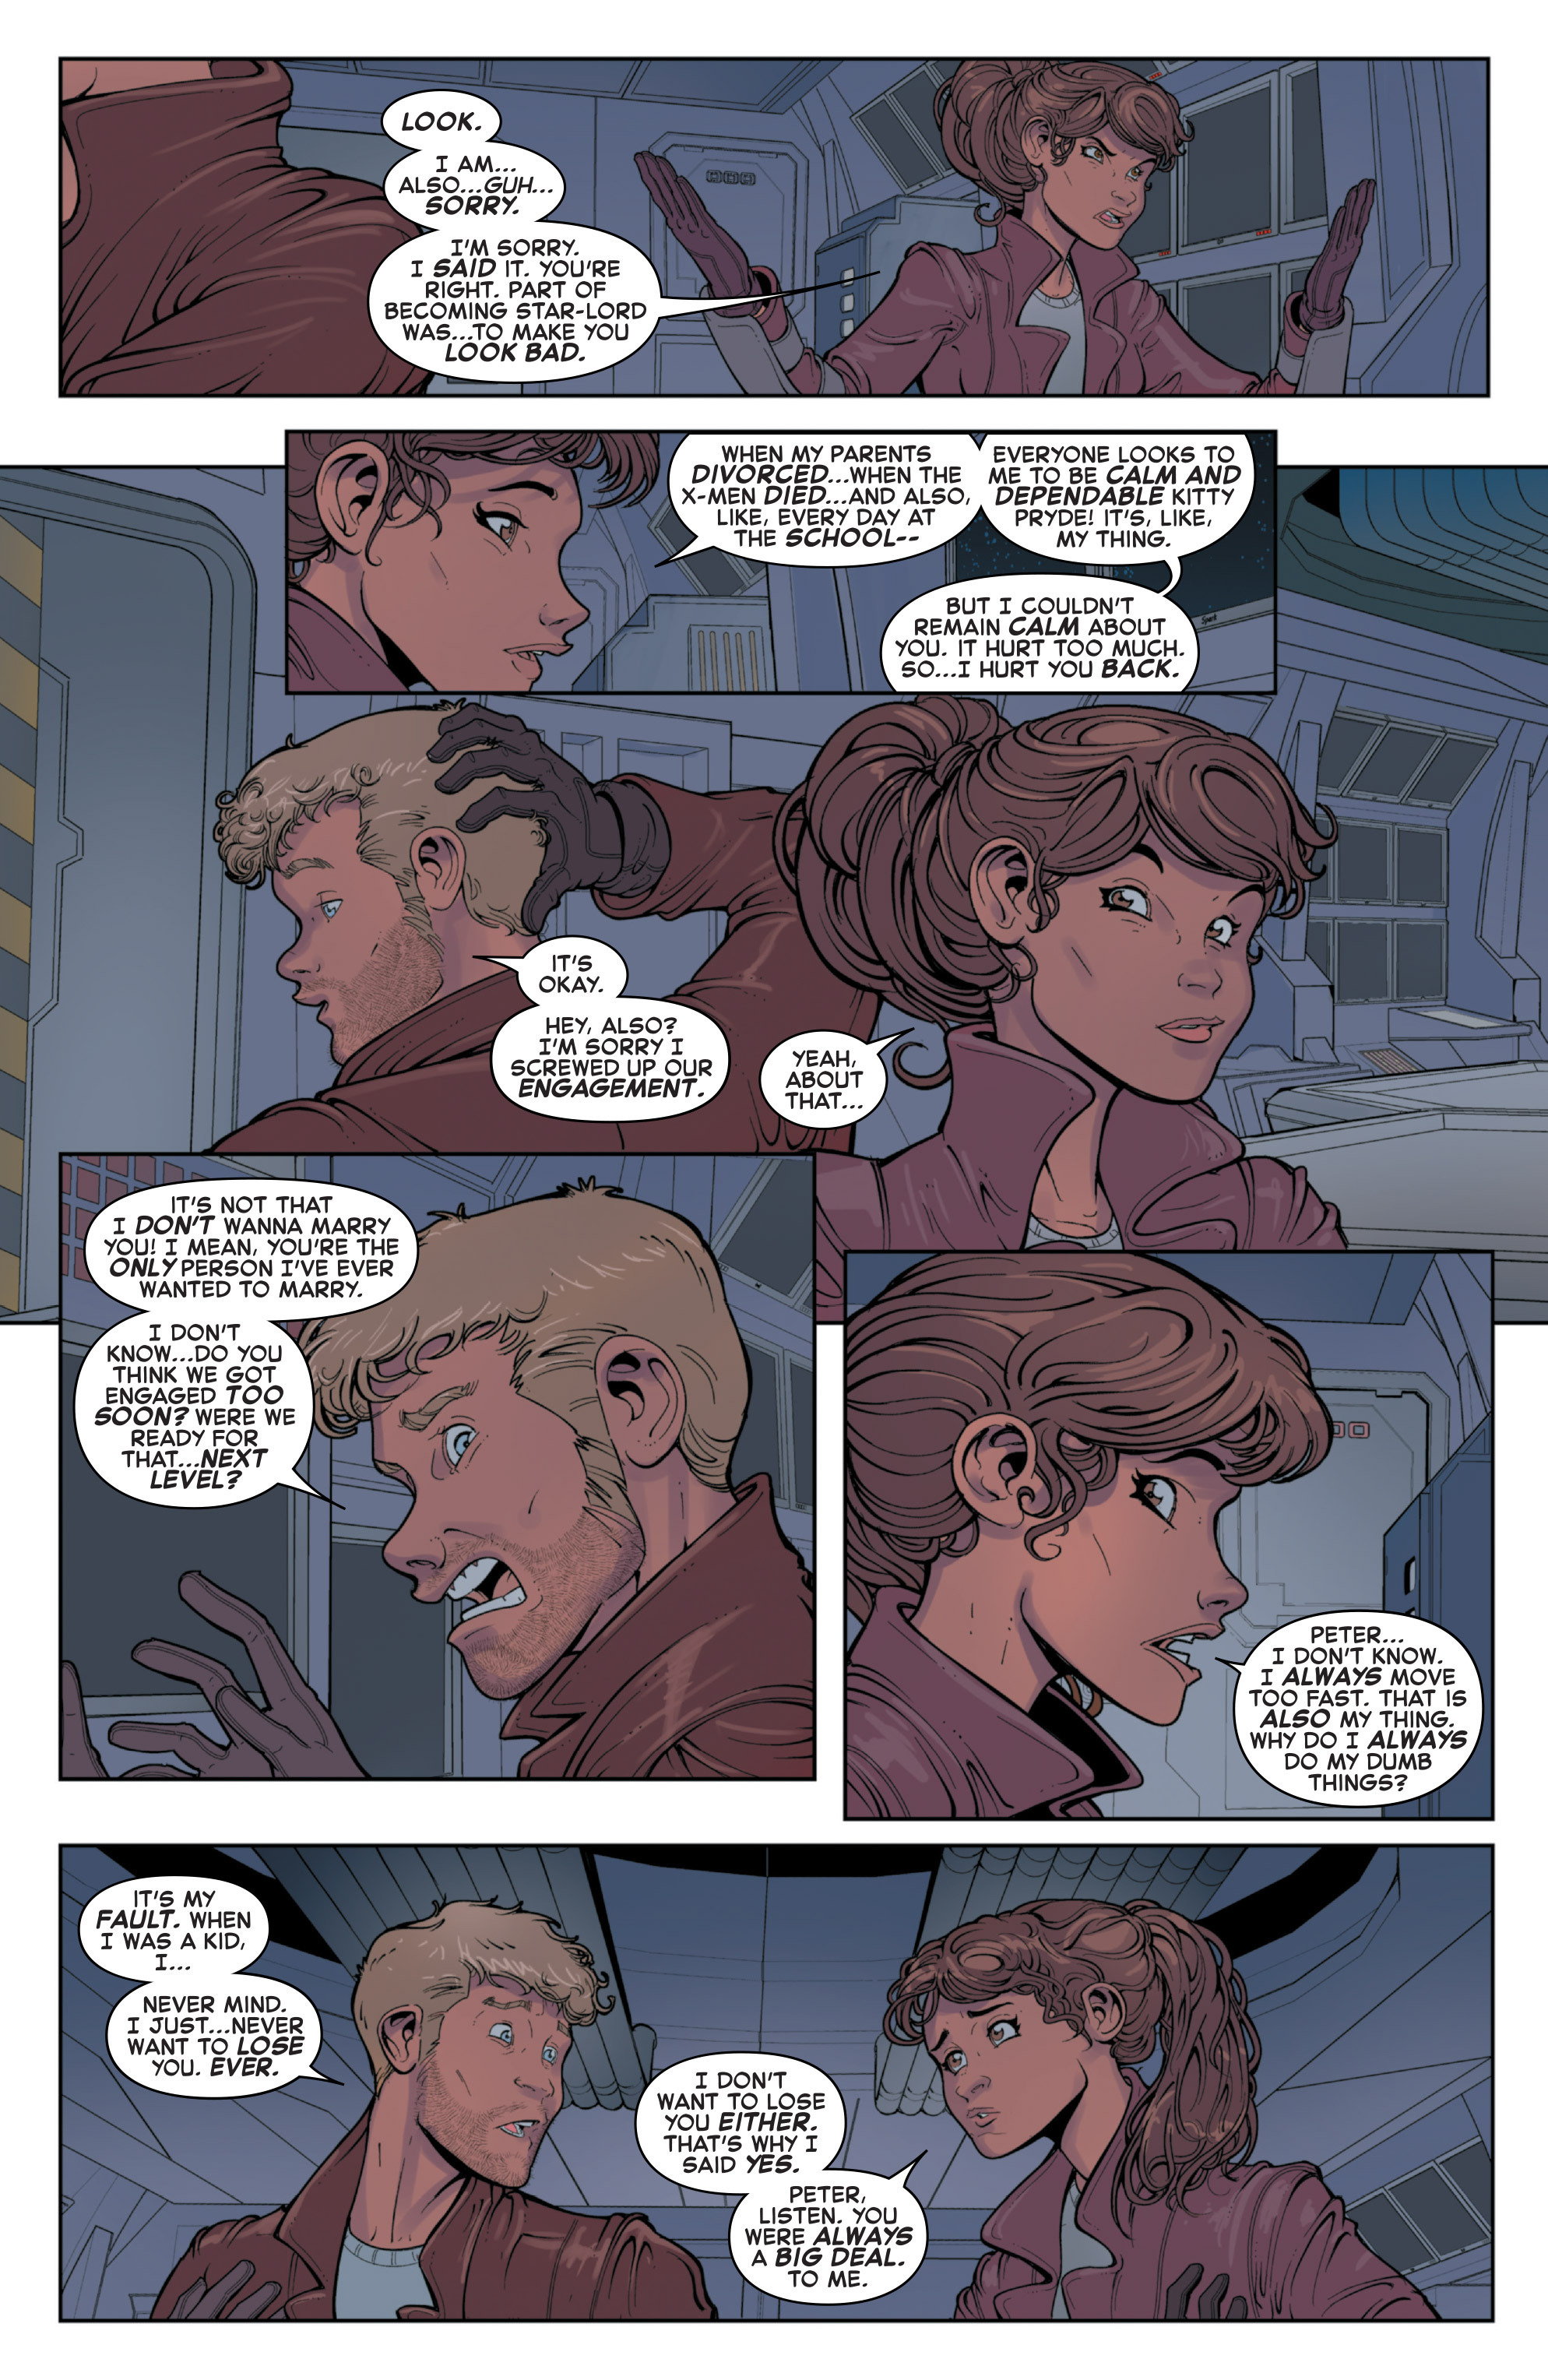 Star-Lord (2016) #8 - Read Star-Lord (2016) Issue #8 Page 22